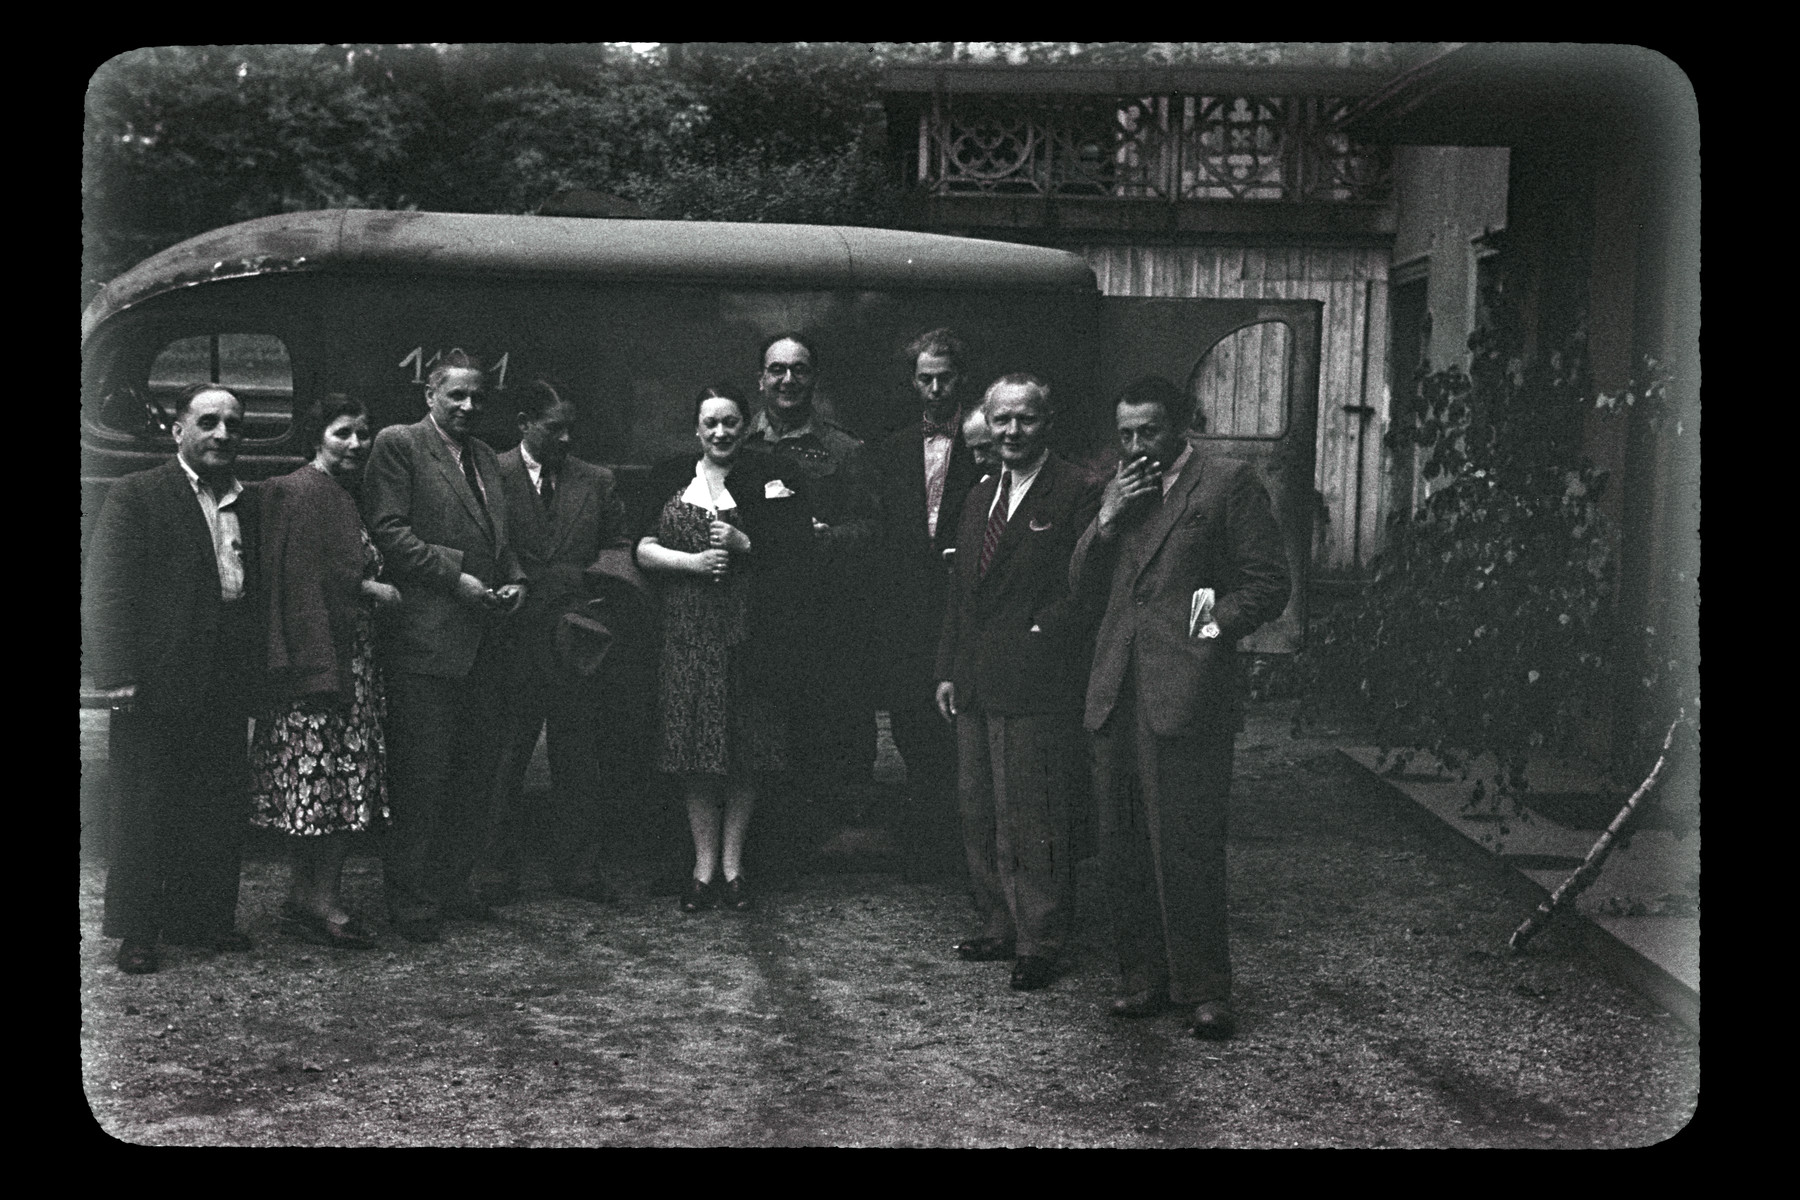 Group portrait of people posing in front of a bus in Upper Silesia.